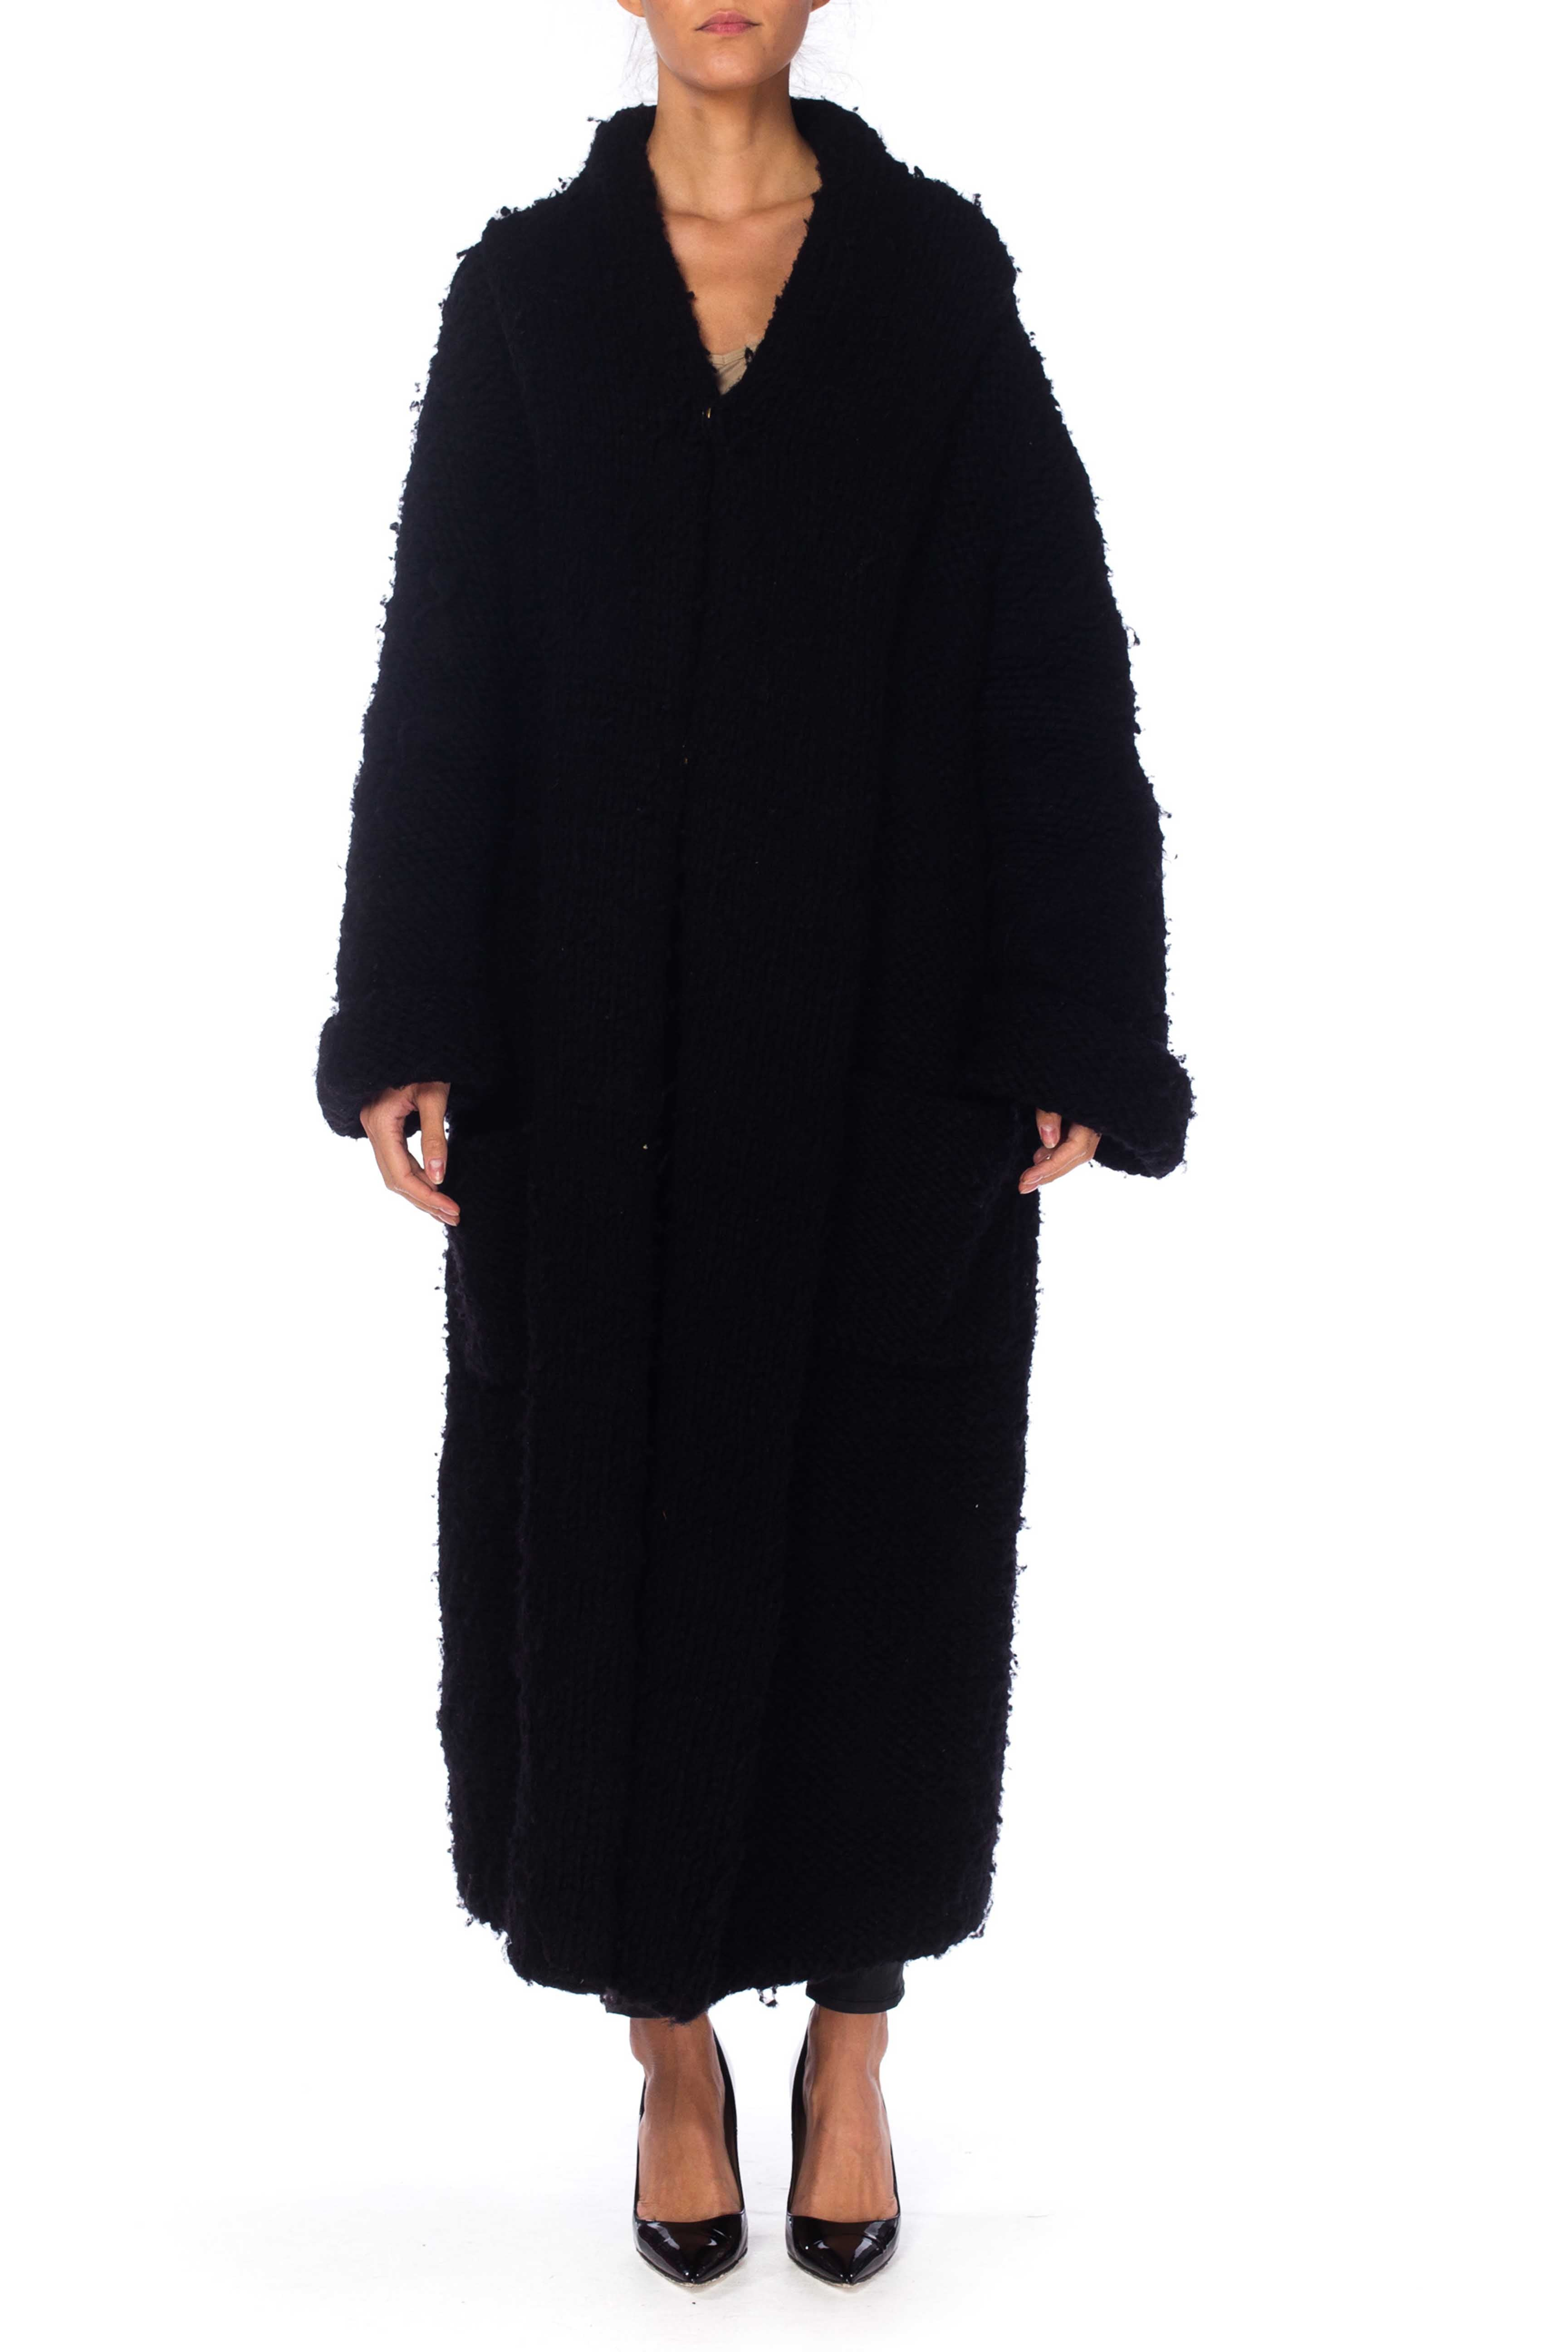 Chunky Deconstructed Knit Avant Garde Belgian Sweater Coat